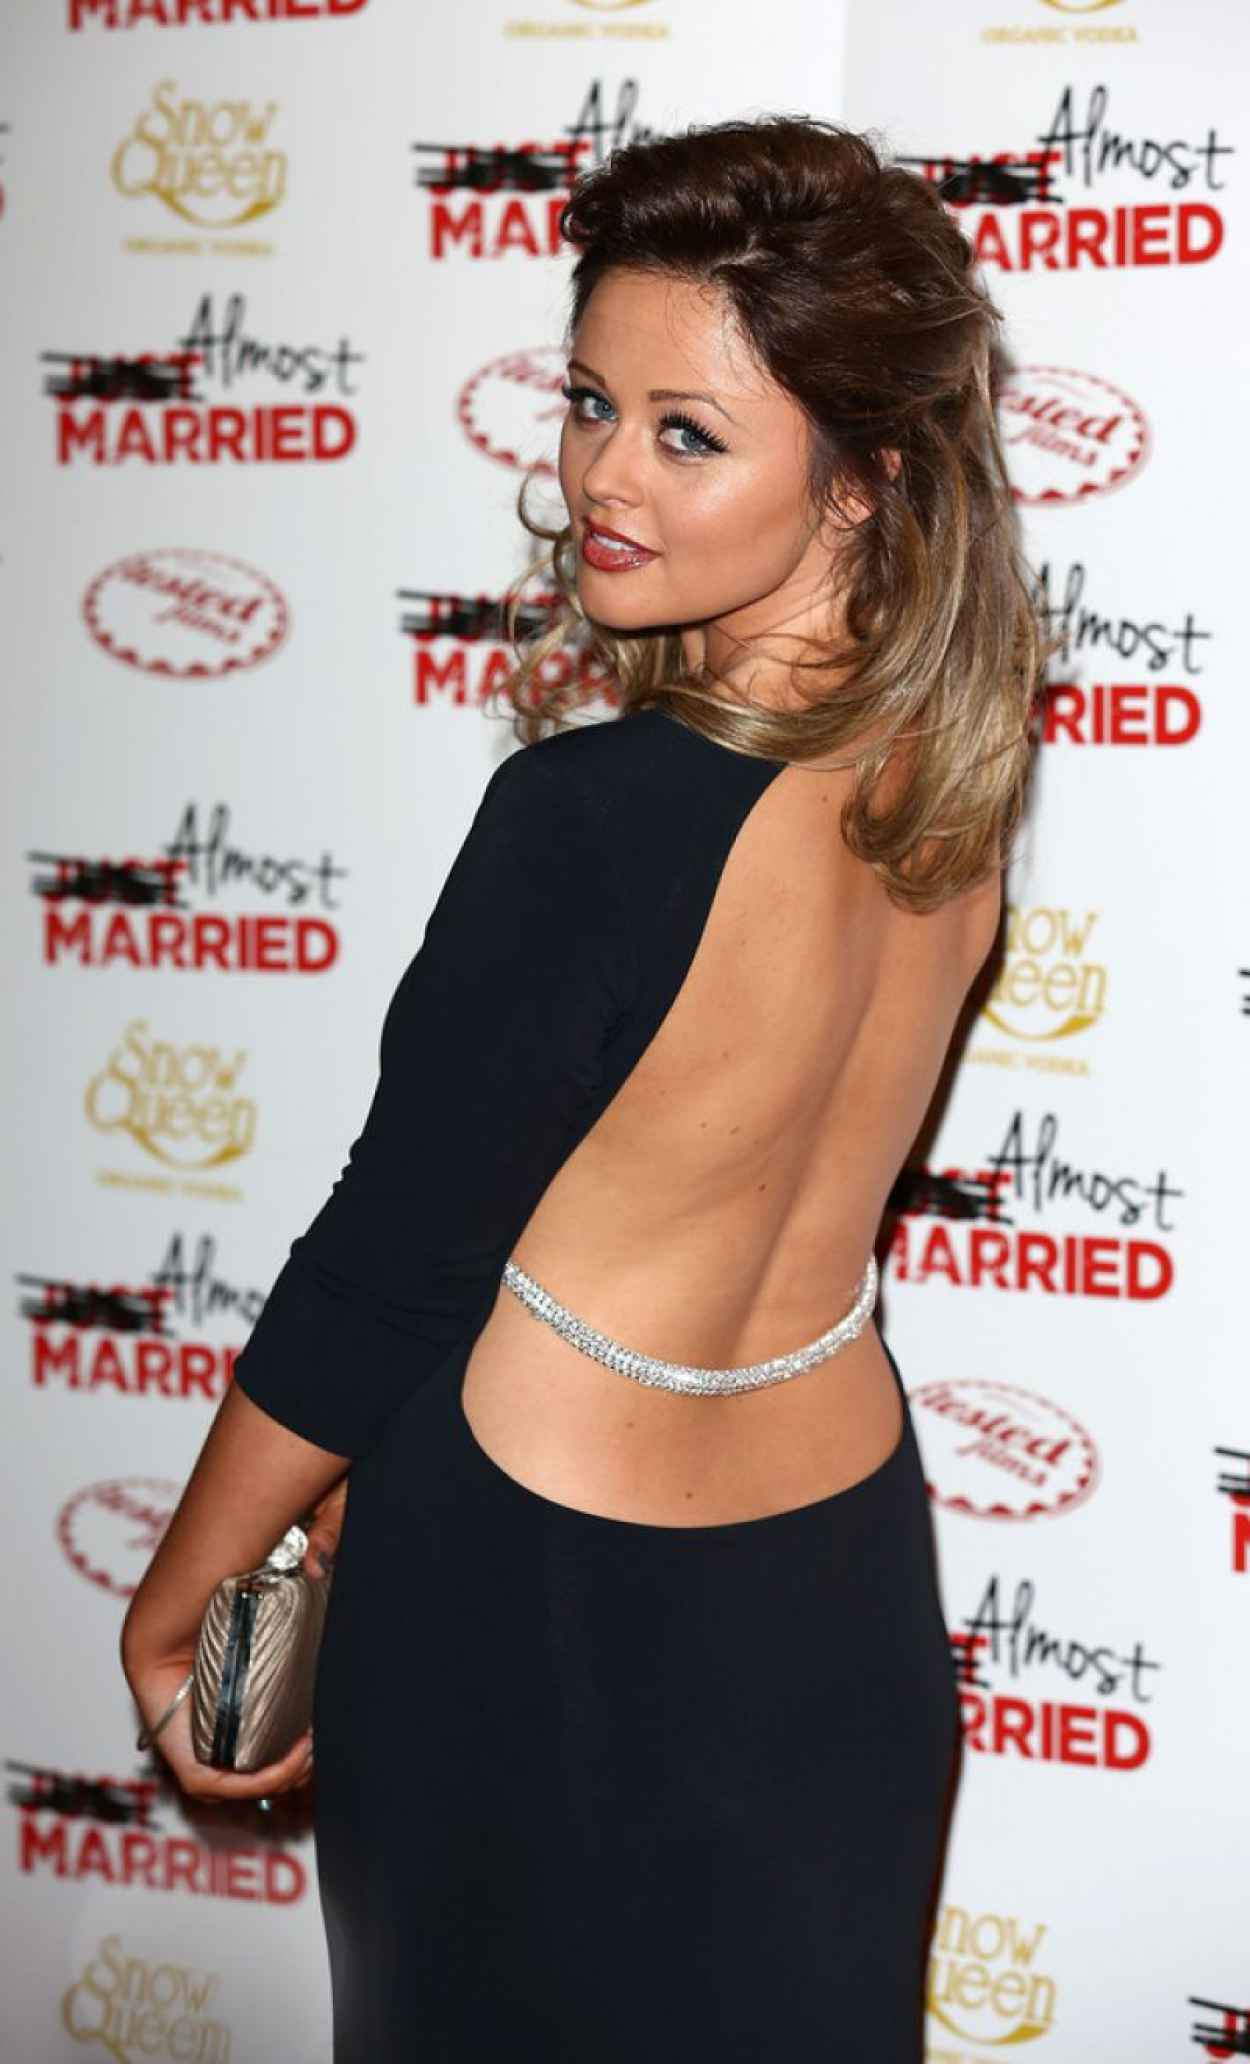 Emily Atack on Red Carpet - Almost Married Screening in London-1